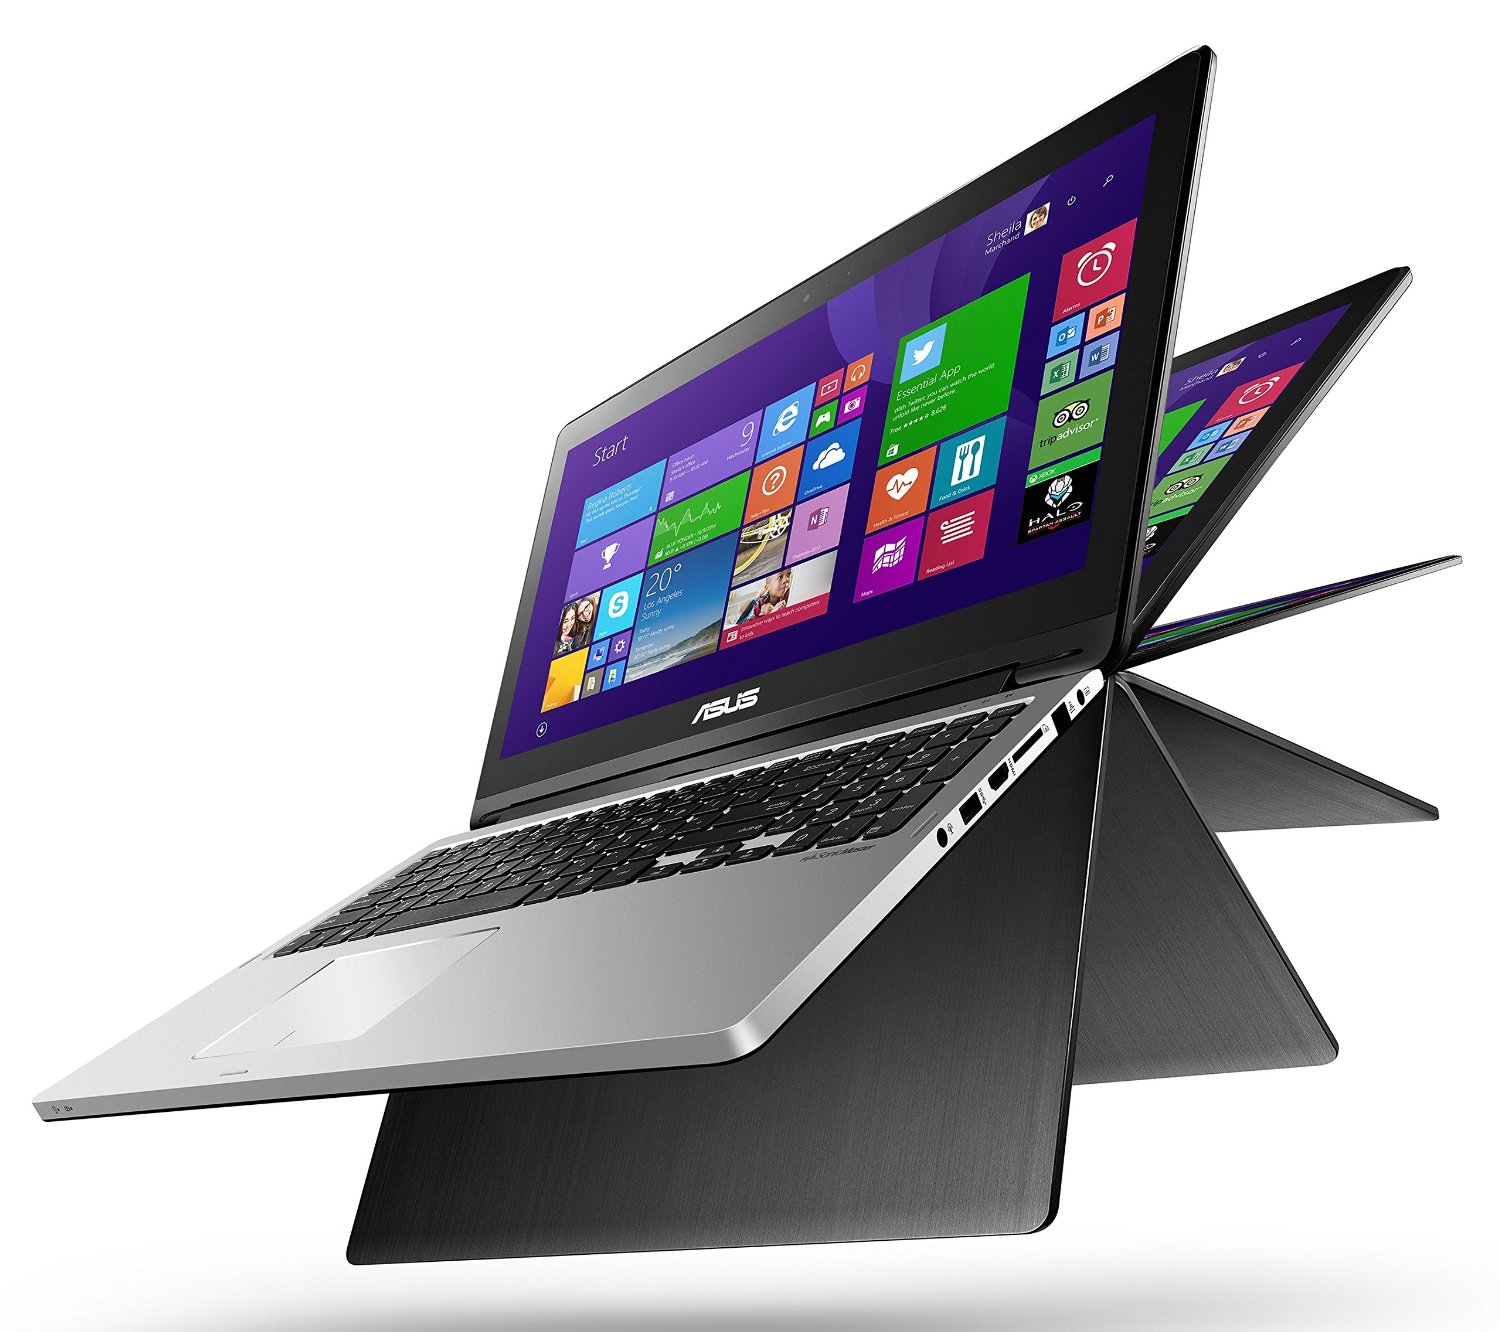 ASUS Transformer Book TP300LA Touchscreen Laptop